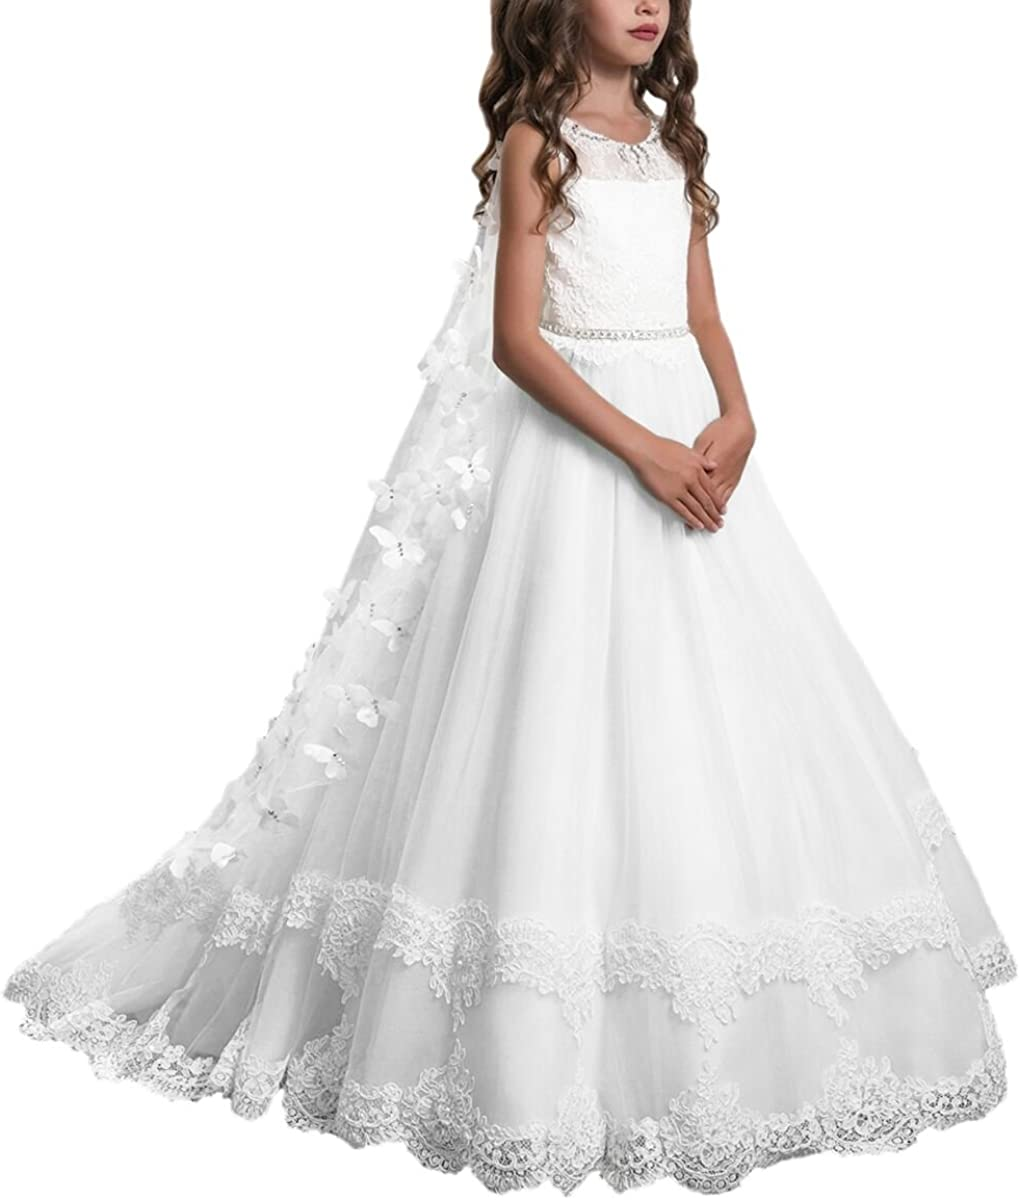 Amazon Com Plwedding Lace Flower Girls Dresses Kids First Communion Dress Princess Wedding Pageant Ball Gown Clothing